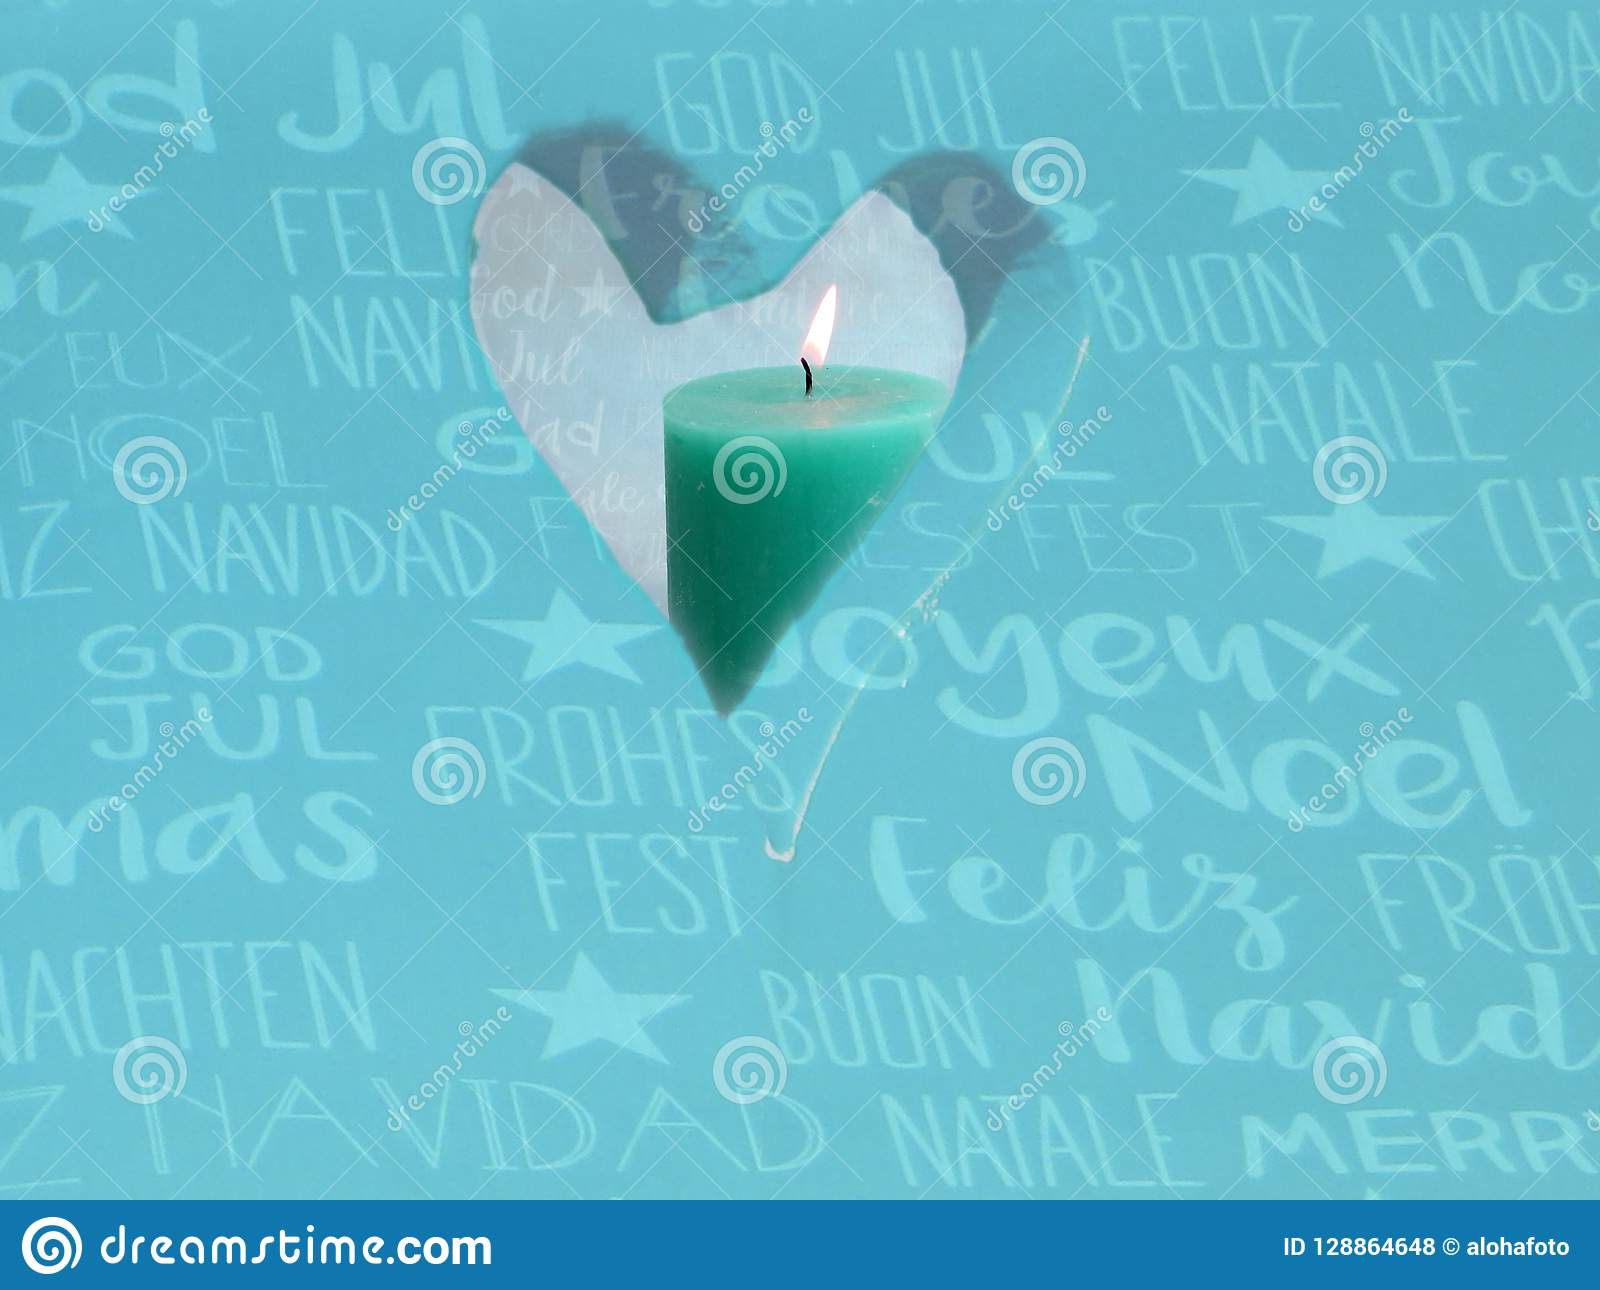 Window In The Form A Heart With A Turquoise Candle And An